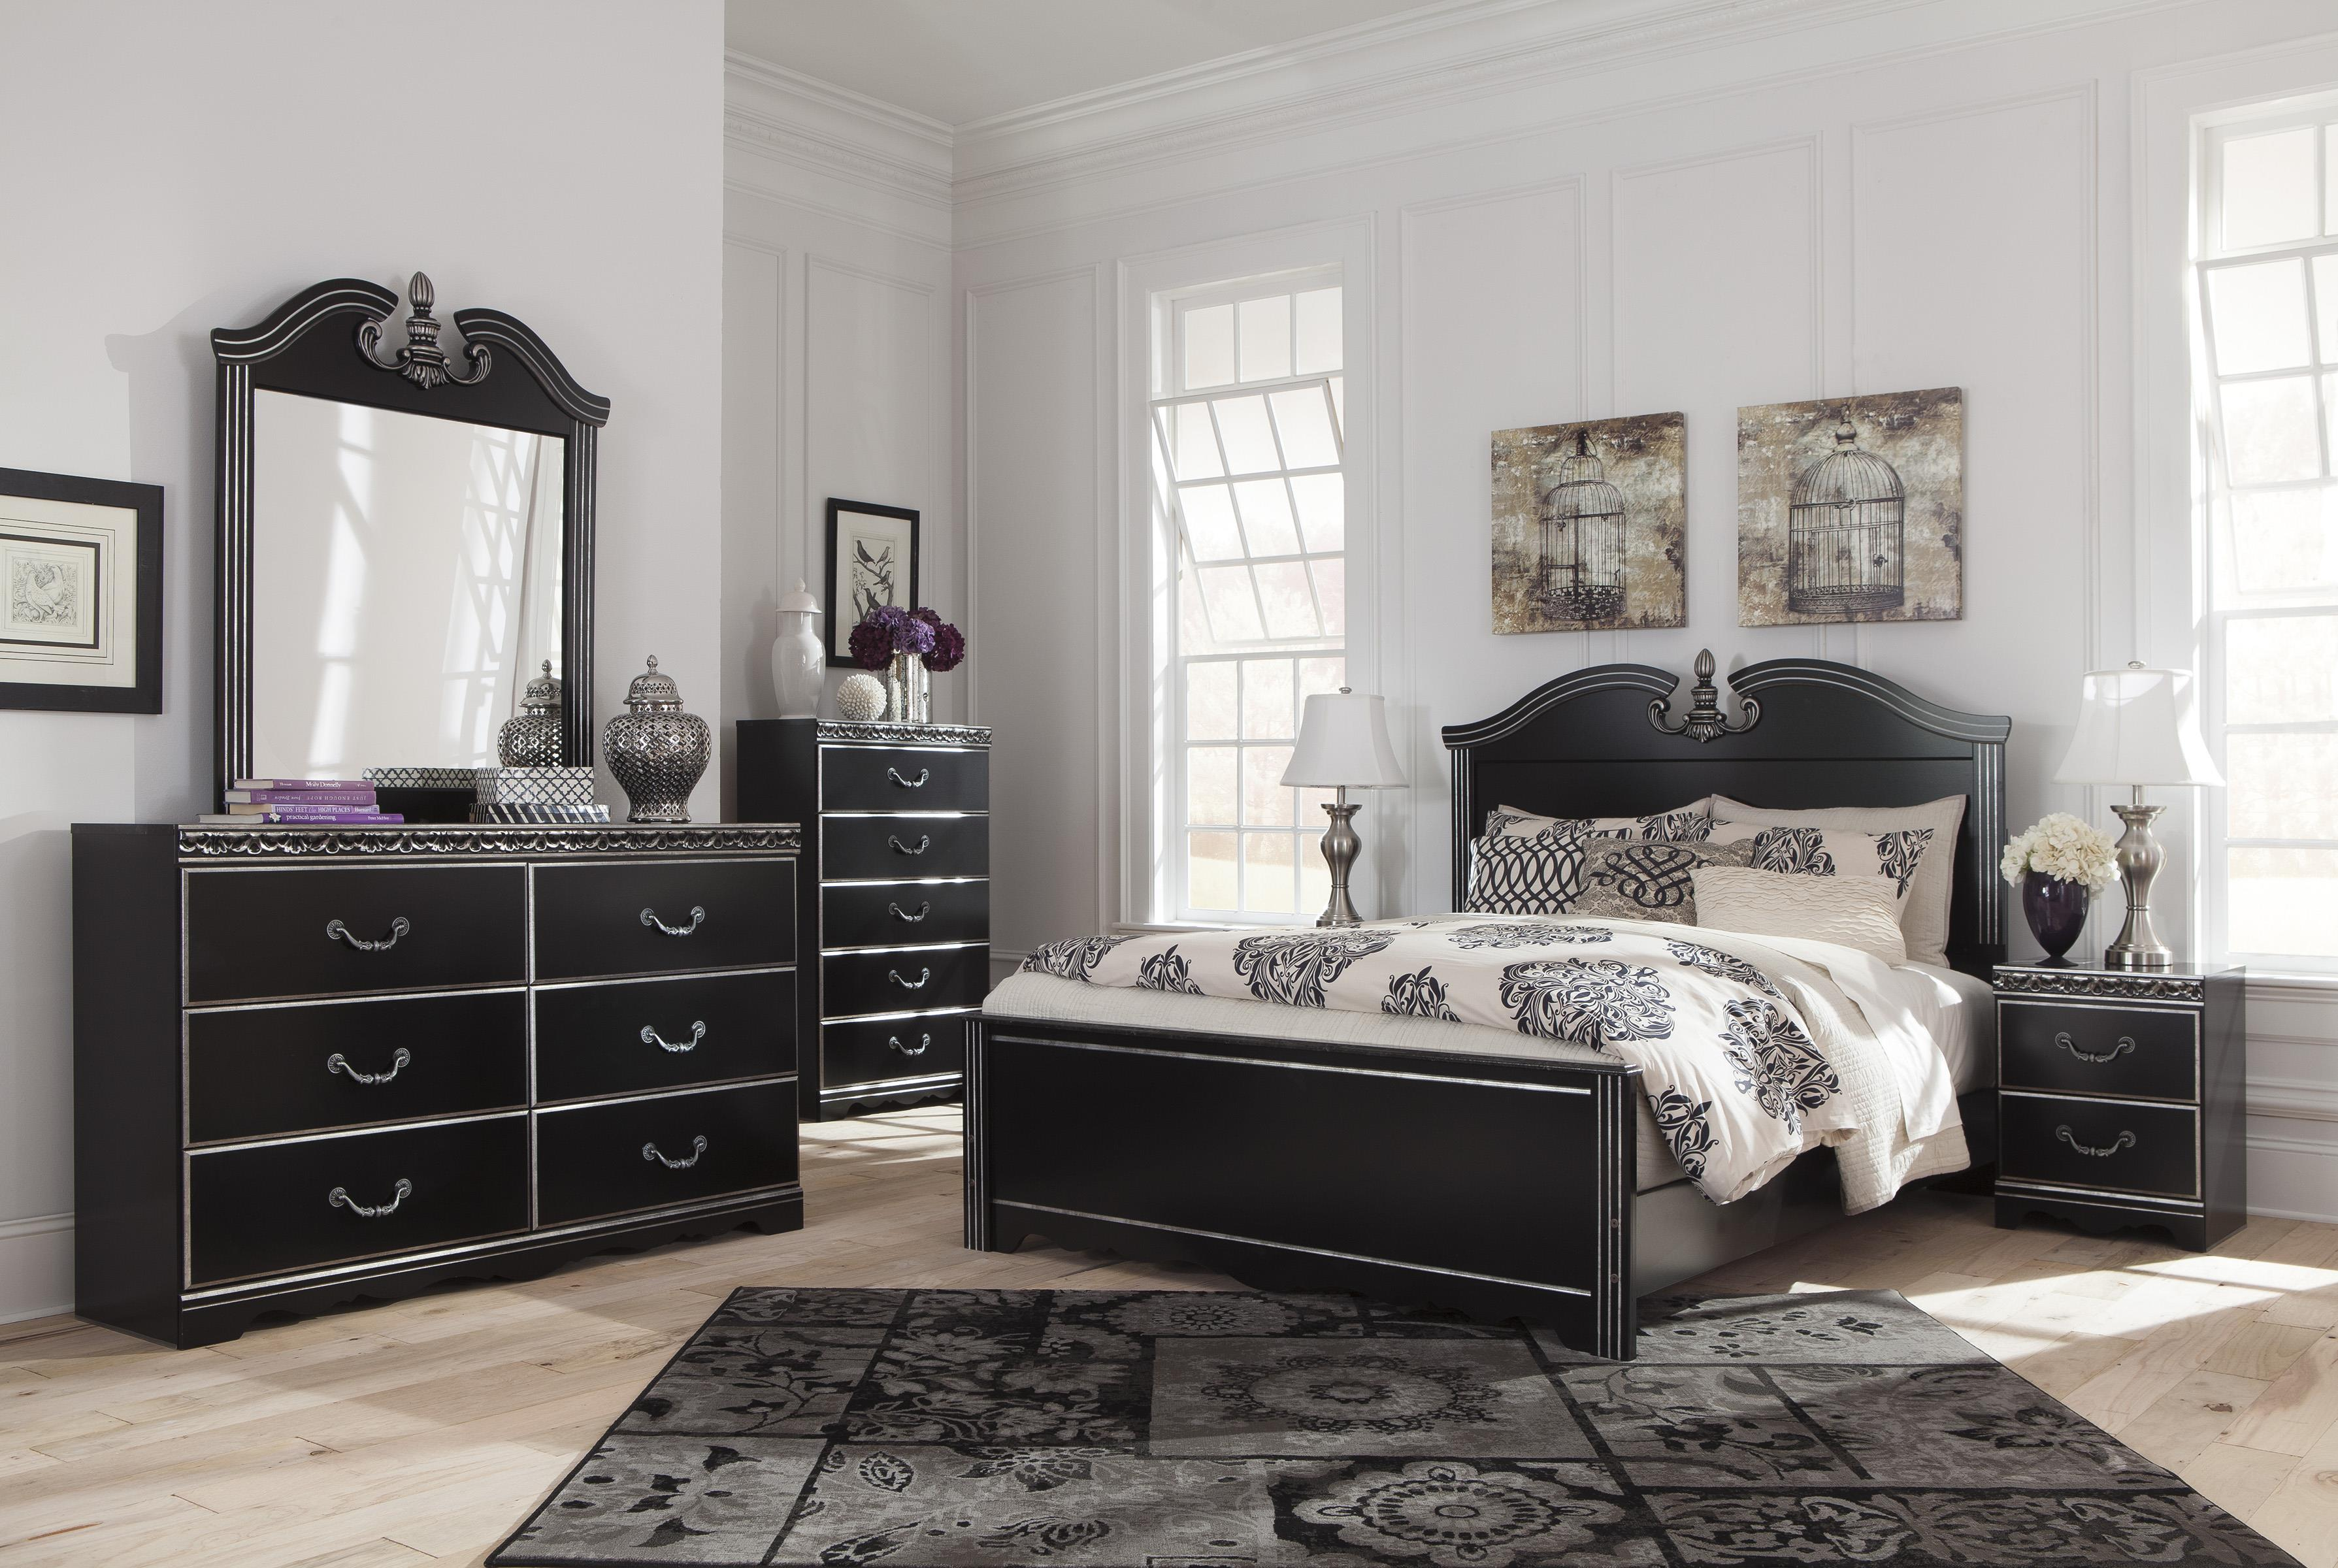 Signature Design by Ashley Navoni Queen Bedroom Group - Item Number: B301 Q Bedroom Group 1